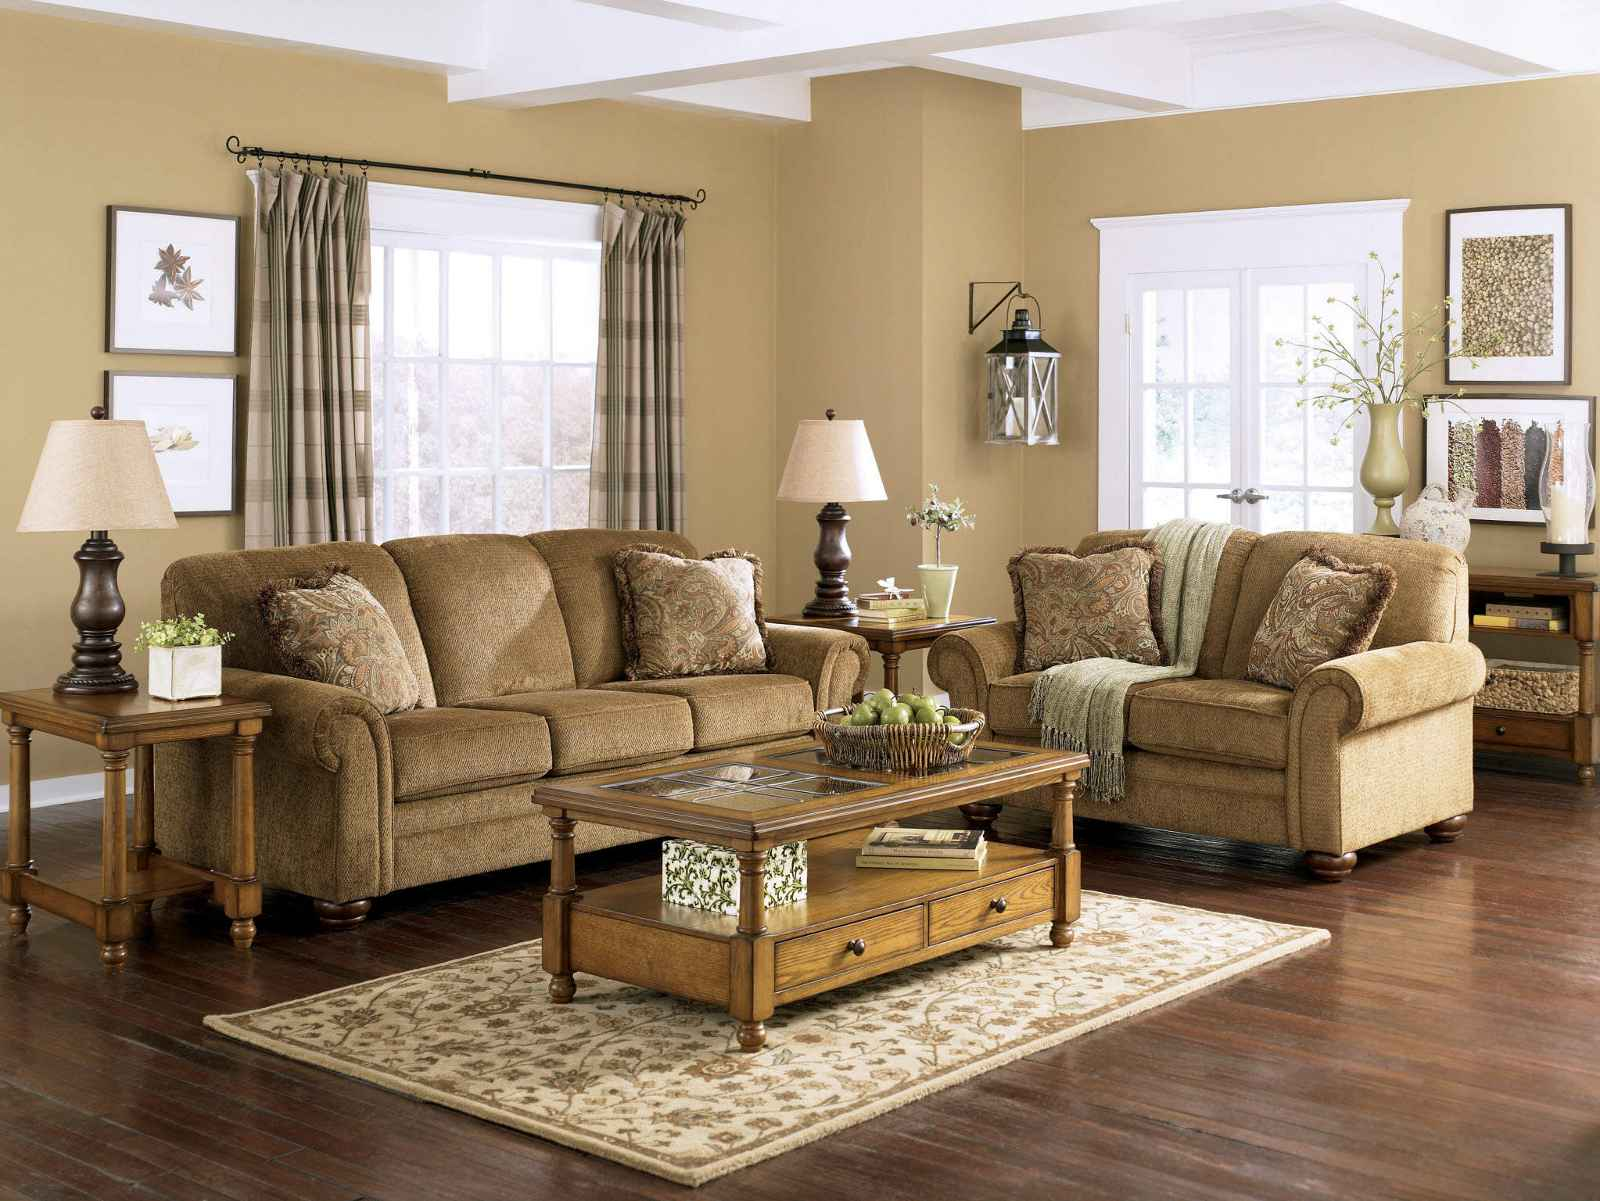 Remarkable Home Living Room Furniture Ideas 1600 x 1201 · 156 kB · jpeg